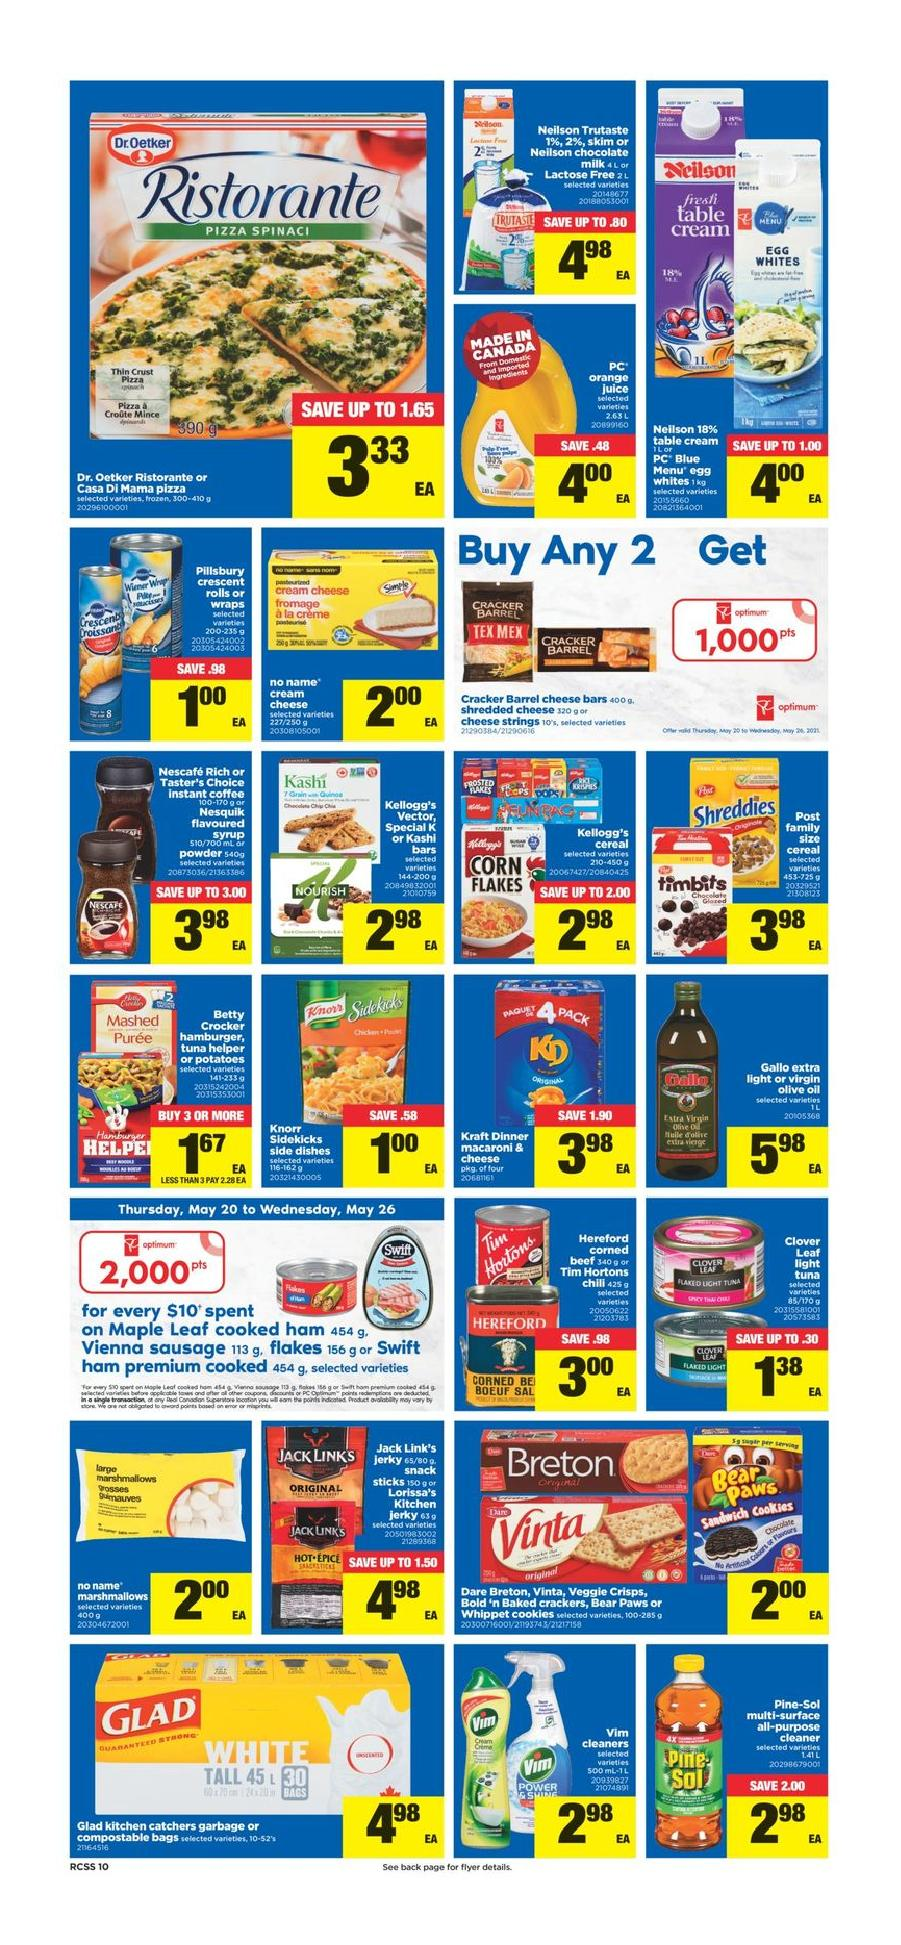 12 Superstore ON Flyer May 20 May 26 2021